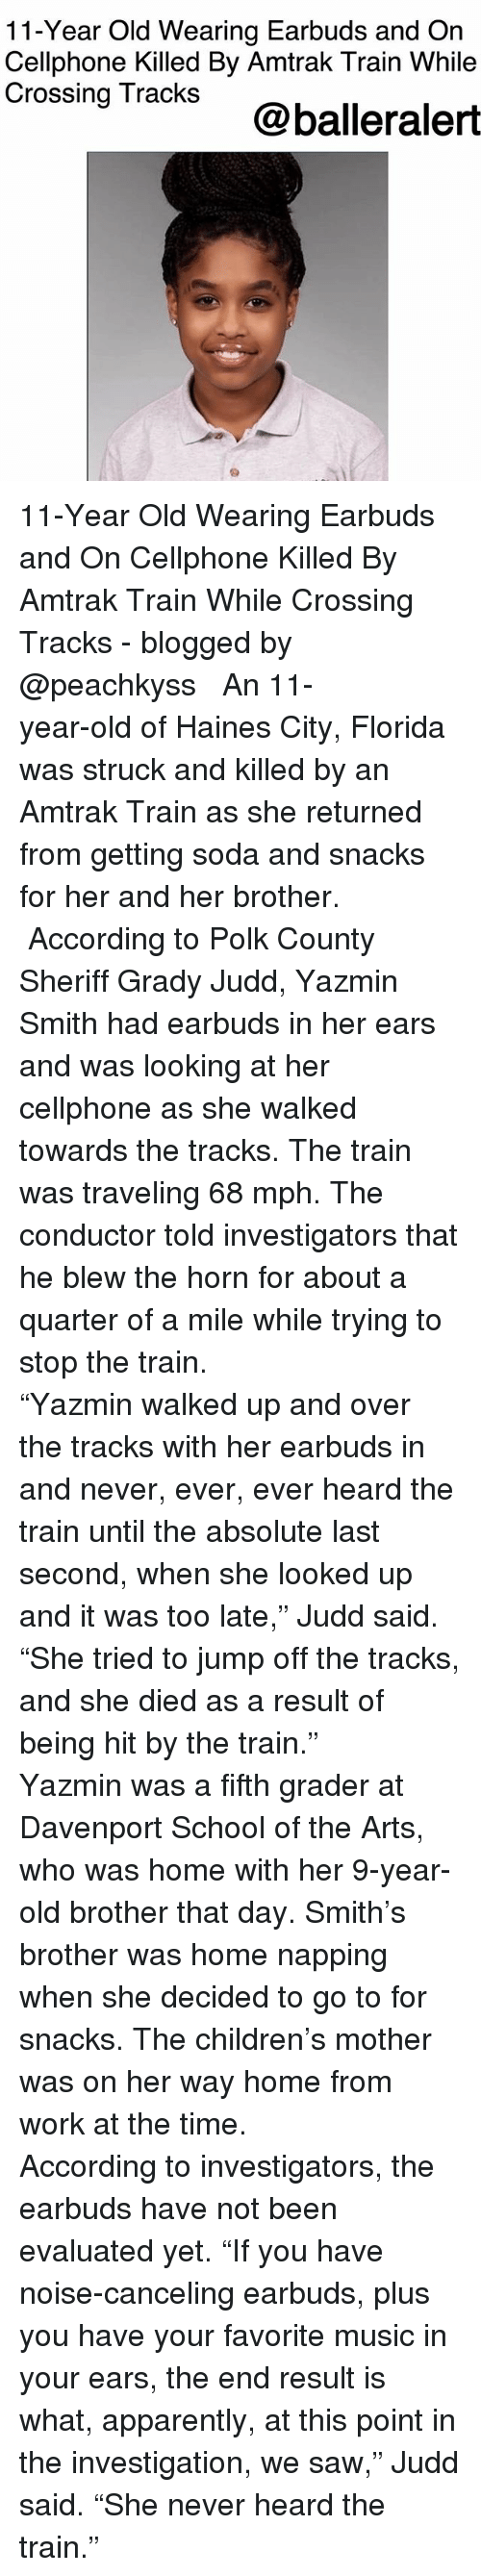 """Apparently, Children, and Memes: 11-Year Old Wearing Earbuds and On  Cellphone Killed By Amtrak Train While  Crossing TrackS@balleraler 11-Year Old Wearing Earbuds and On Cellphone Killed By Amtrak Train While Crossing Tracks - blogged by @peachkyss ⠀⠀⠀⠀⠀⠀⠀ ⠀⠀⠀⠀⠀⠀⠀ An 11-year-old of Haines City, Florida was struck and killed by an Amtrak Train as she returned from getting soda and snacks for her and her brother. ⠀⠀⠀⠀⠀⠀⠀ ⠀⠀⠀⠀⠀⠀⠀ According to Polk County Sheriff Grady Judd, Yazmin Smith had earbuds in her ears and was looking at her cellphone as she walked towards the tracks. The train was traveling 68 mph. The conductor told investigators that he blew the horn for about a quarter of a mile while trying to stop the train. ⠀⠀⠀⠀⠀⠀⠀ ⠀⠀⠀⠀⠀⠀⠀ """"Yazmin walked up and over the tracks with her earbuds in and never, ever, ever heard the train until the absolute last second, when she looked up and it was too late,"""" Judd said. """"She tried to jump off the tracks, and she died as a result of being hit by the train."""" ⠀⠀⠀⠀⠀⠀⠀ ⠀⠀⠀⠀⠀⠀⠀ Yazmin was a fifth grader at Davenport School of the Arts, who was home with her 9-year- old brother that day. Smith's brother was home napping when she decided to go to for snacks. The children's mother was on her way home from work at the time. ⠀⠀⠀⠀⠀⠀⠀ ⠀⠀⠀⠀⠀⠀⠀ According to investigators, the earbuds have not been evaluated yet. """"If you have noise-canceling earbuds, plus you have your favorite music in your ears, the end result is what, apparently, at this point in the investigation, we saw,"""" Judd said. """"She never heard the train."""""""